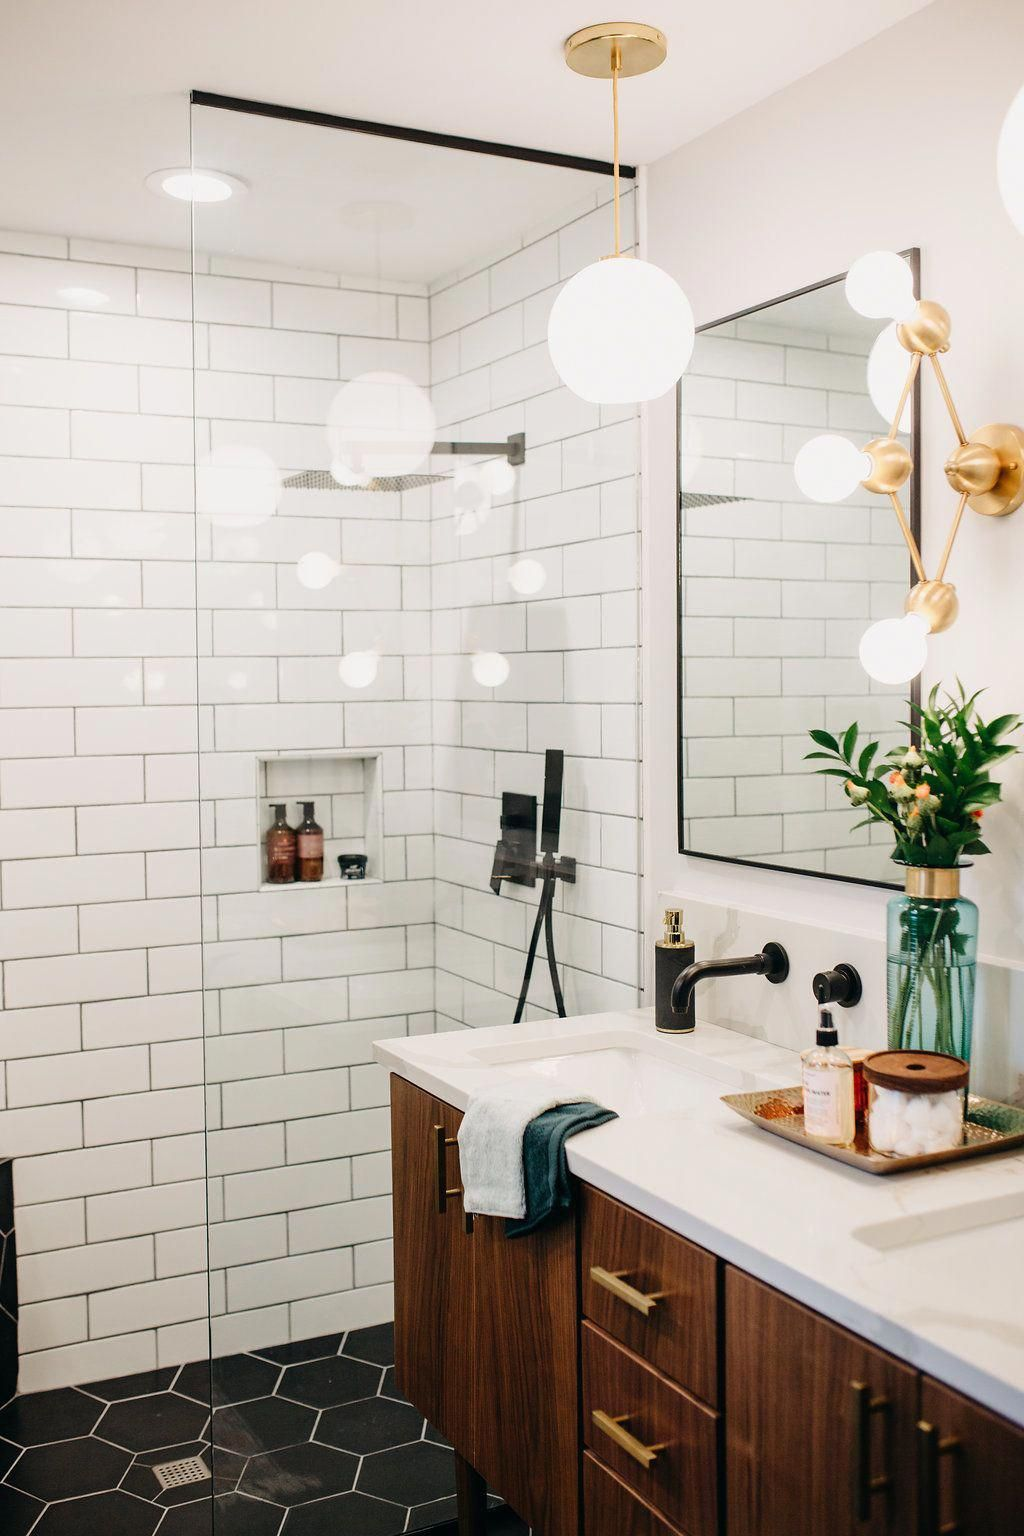 Use One Color Mix And Match Or Stick With Neutrals For A More Subtle Approach To Geometry Find More Mid Century Modern Tile Inspira In 2020 Mid Century Modern Bathroom Modern Bathroom